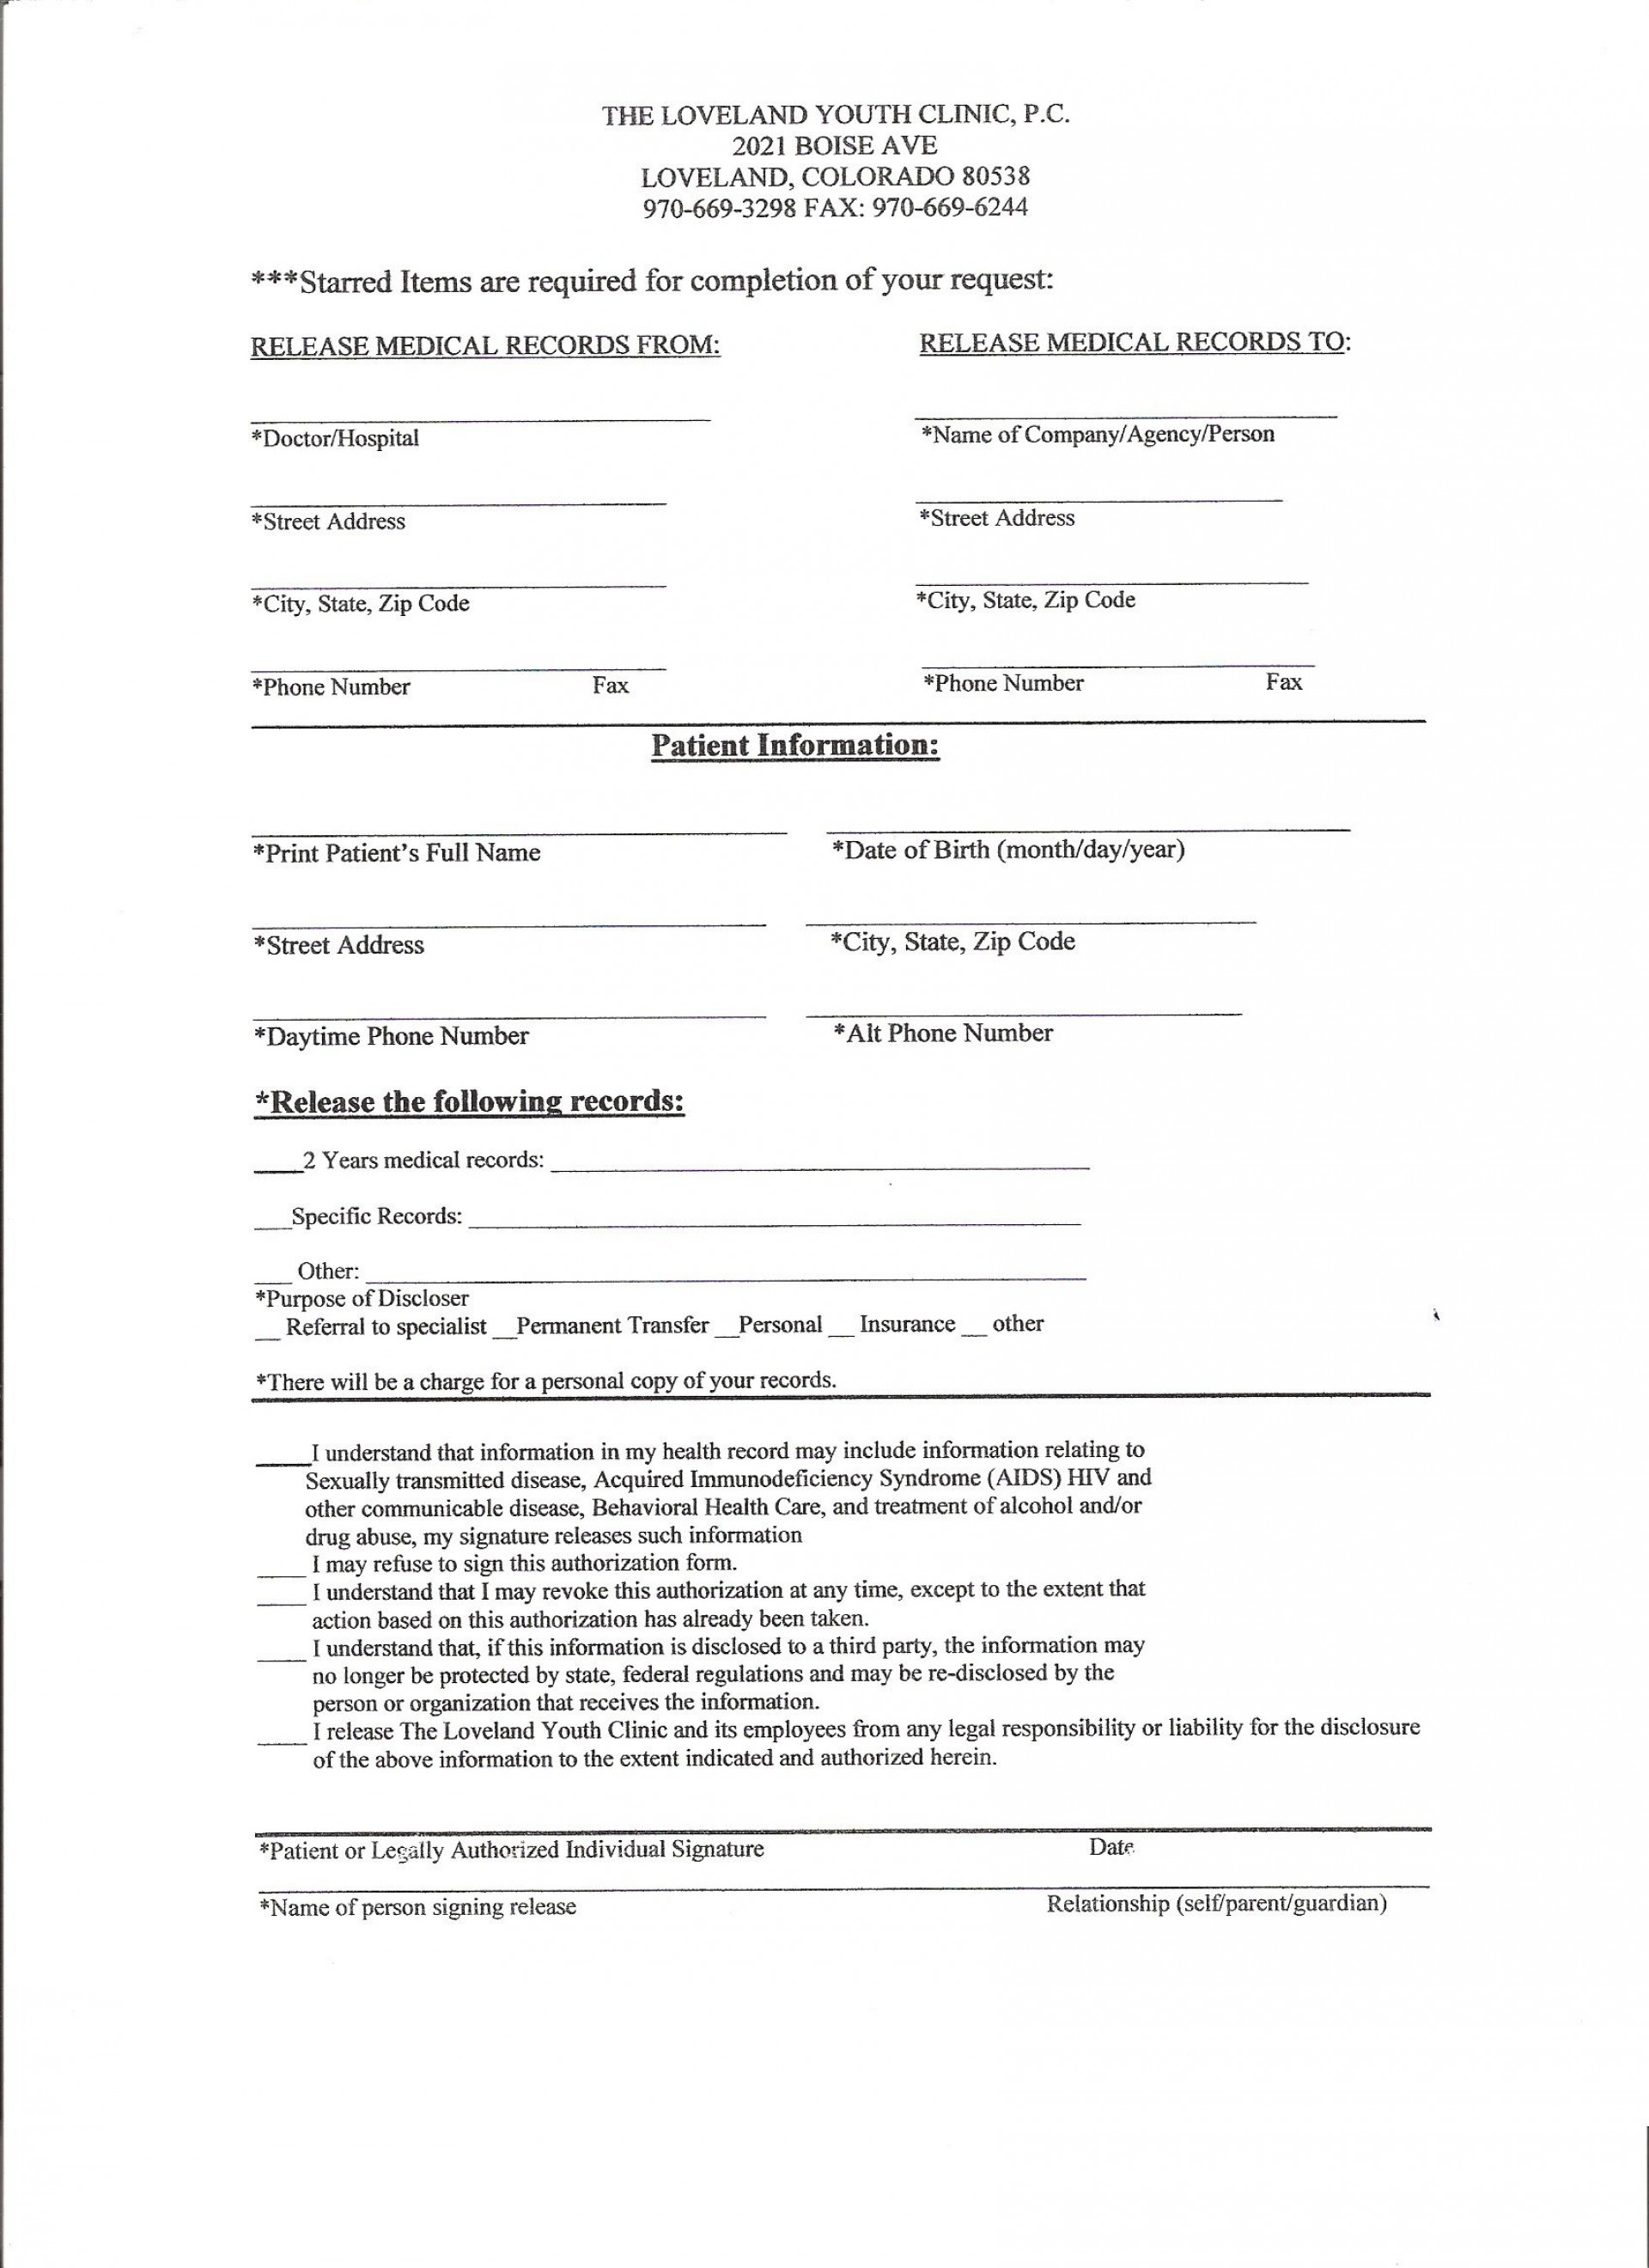 005 Wonderful Medical Record Release Form Template High Def  Request Free Personal1920